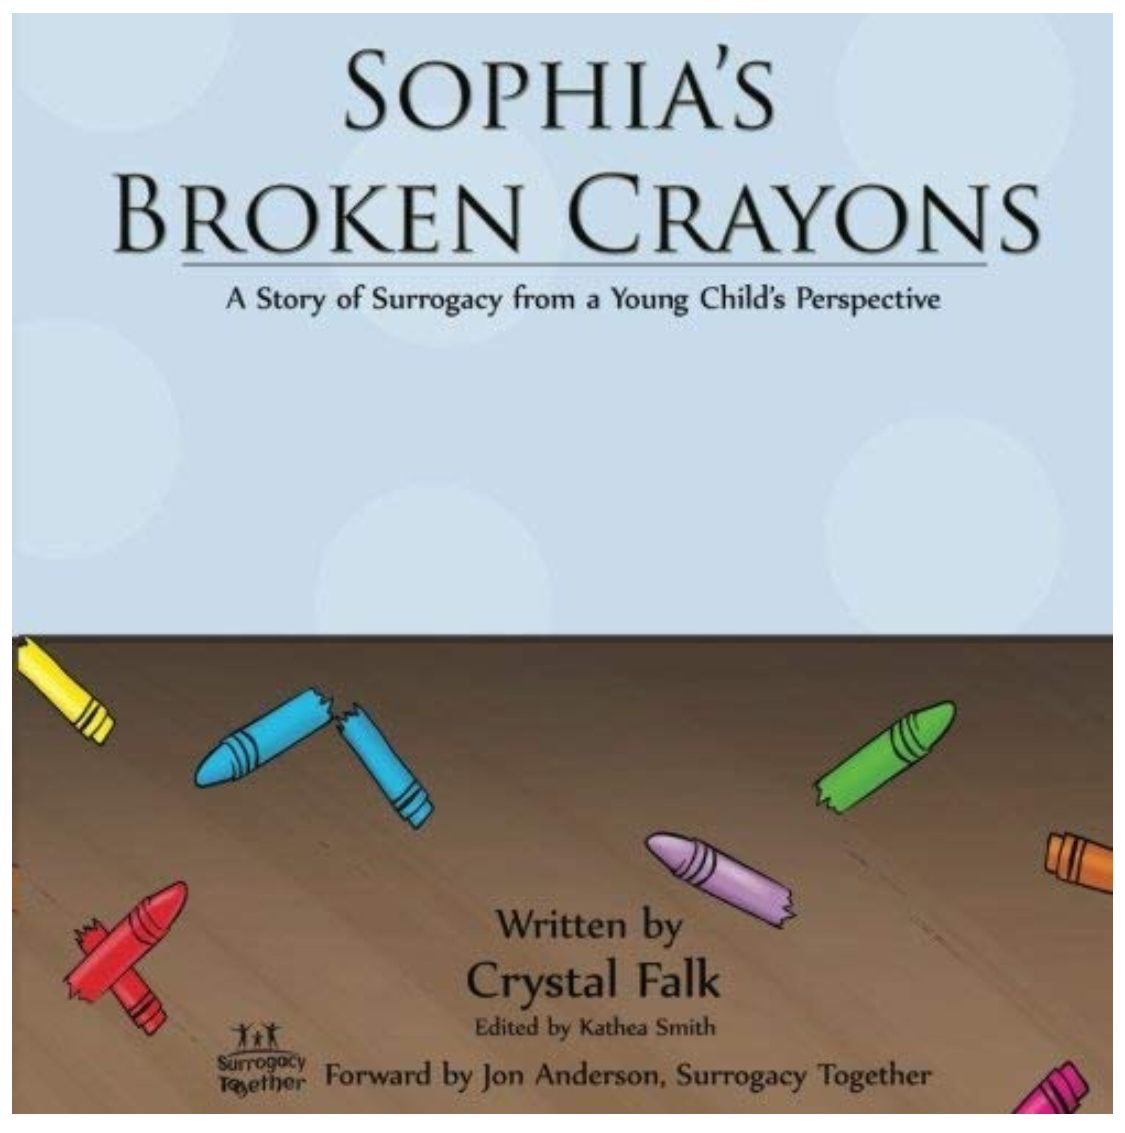 Sophia's Broken Crayons - Sophia's Broken Crayons is a book for young children, recommended for children ages 2 to 6 years old which tells a story of surrogacy from a young child's perspective in a practical way that children can understand and grasp. A little girl by the name of Sophia is heartbroken after she discovers all of her crayons are broken. Sophia's friend's share their crayons with her as she experiences seeing her parents choose to give the gift of surrogacy to their friends. Sophia's Broken Crayons is a very easy and understanding way to help explain surrogacy to a young child which include questions such as why can't everyone have a baby? Why would someone choose a surrogate to help grow their family? Why would someone choose to become a surrogate? Follow the story of Sophia as she learns about sharing and helping out friends in need as well as why moms and dads choose surrogates to help grow their families and why surrogates choose to help other families that way.